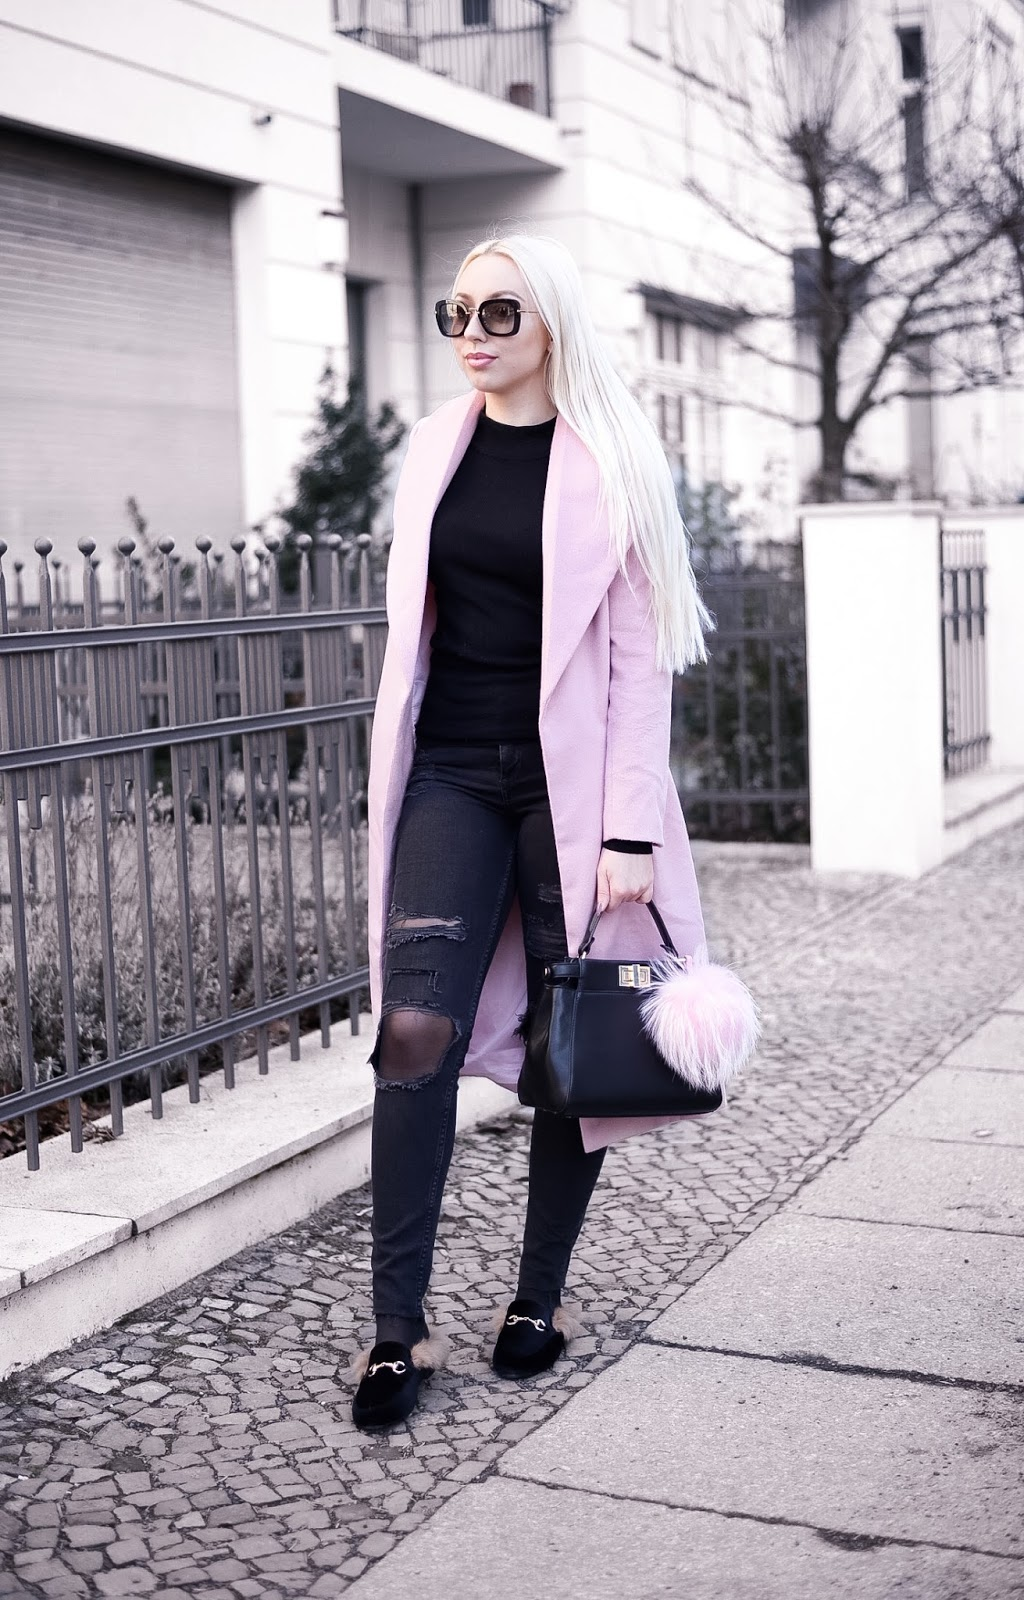 ripped jeans_winter streetstyle_fashionblogger style